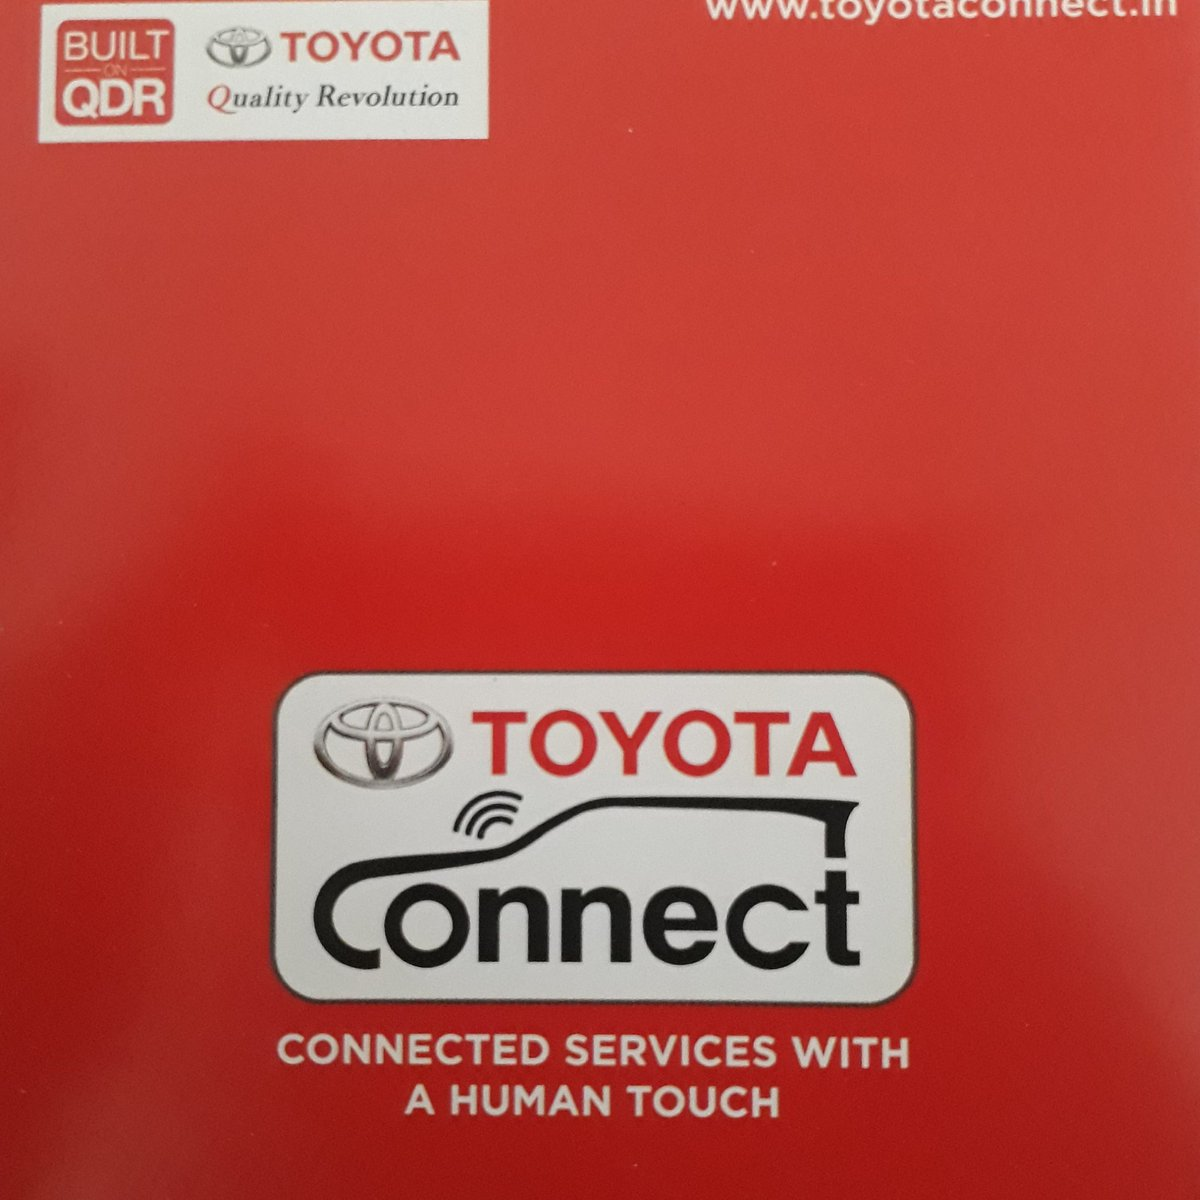 #TOYOTA Connect  # Connected Services With A Human Touch pic.twitter.com/MsZdhJCPzX